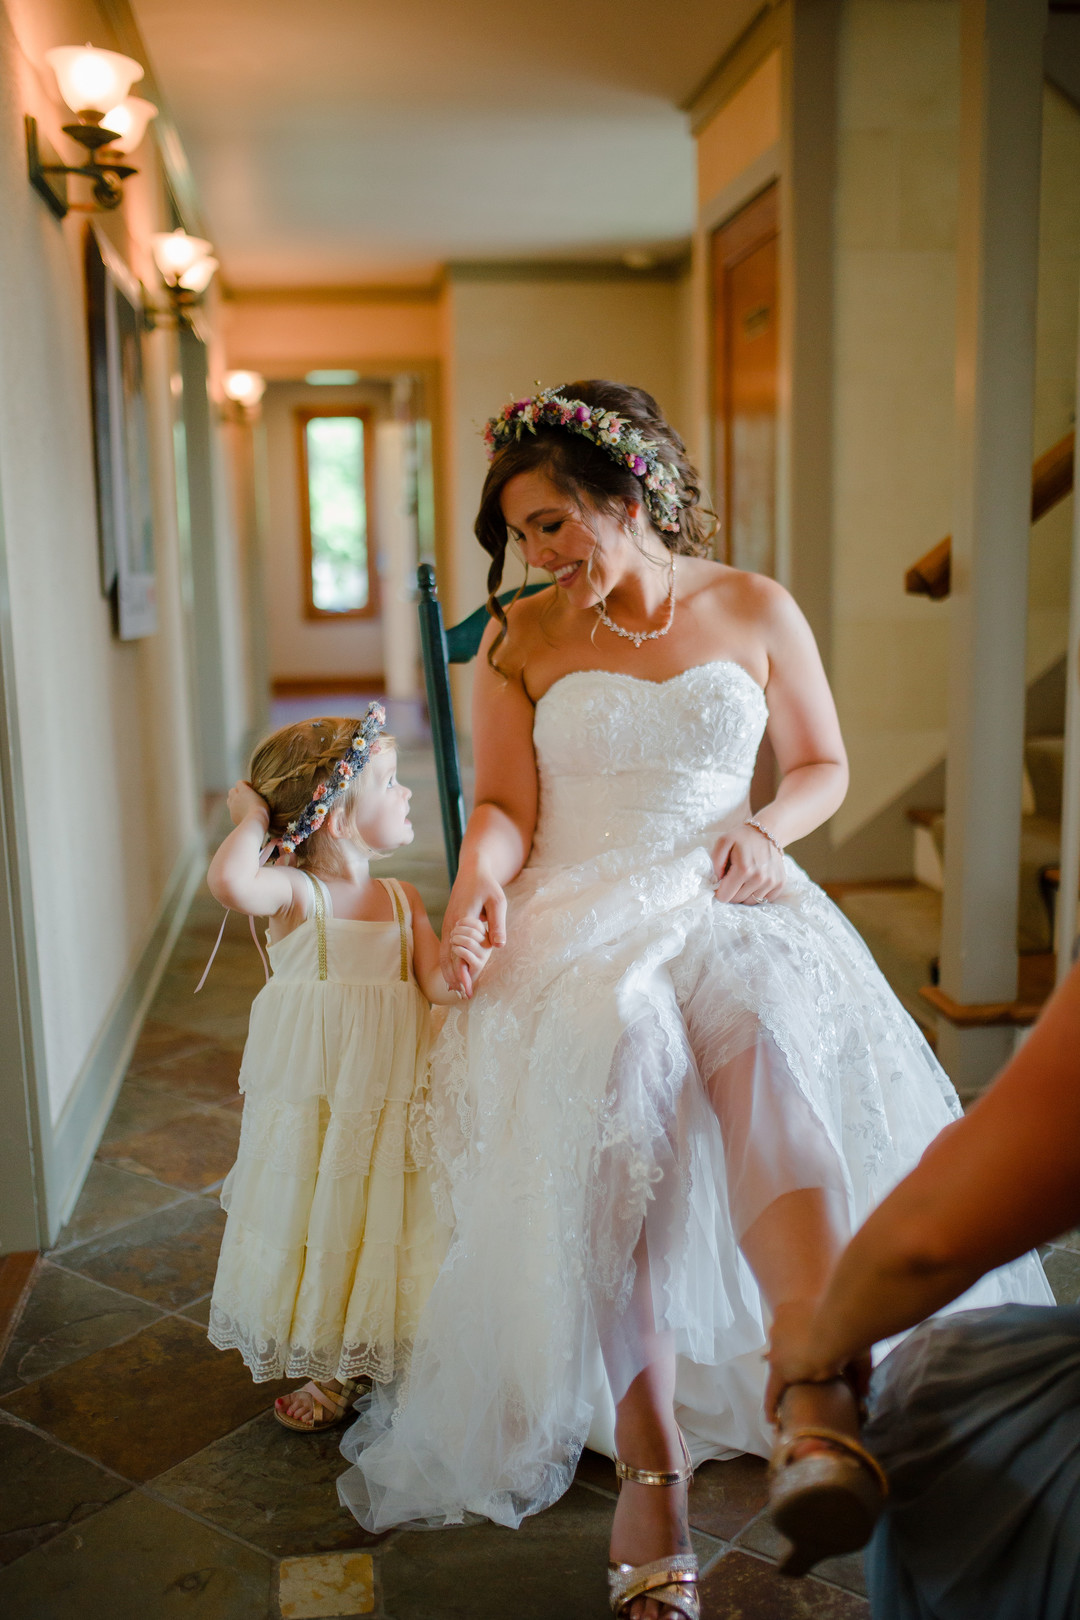 Bride and flower girl: Rustic country wedding in Minooka, IL captured by Katie Brsan Photography. Visit CHItheeWED.com for more wedding inspiration!